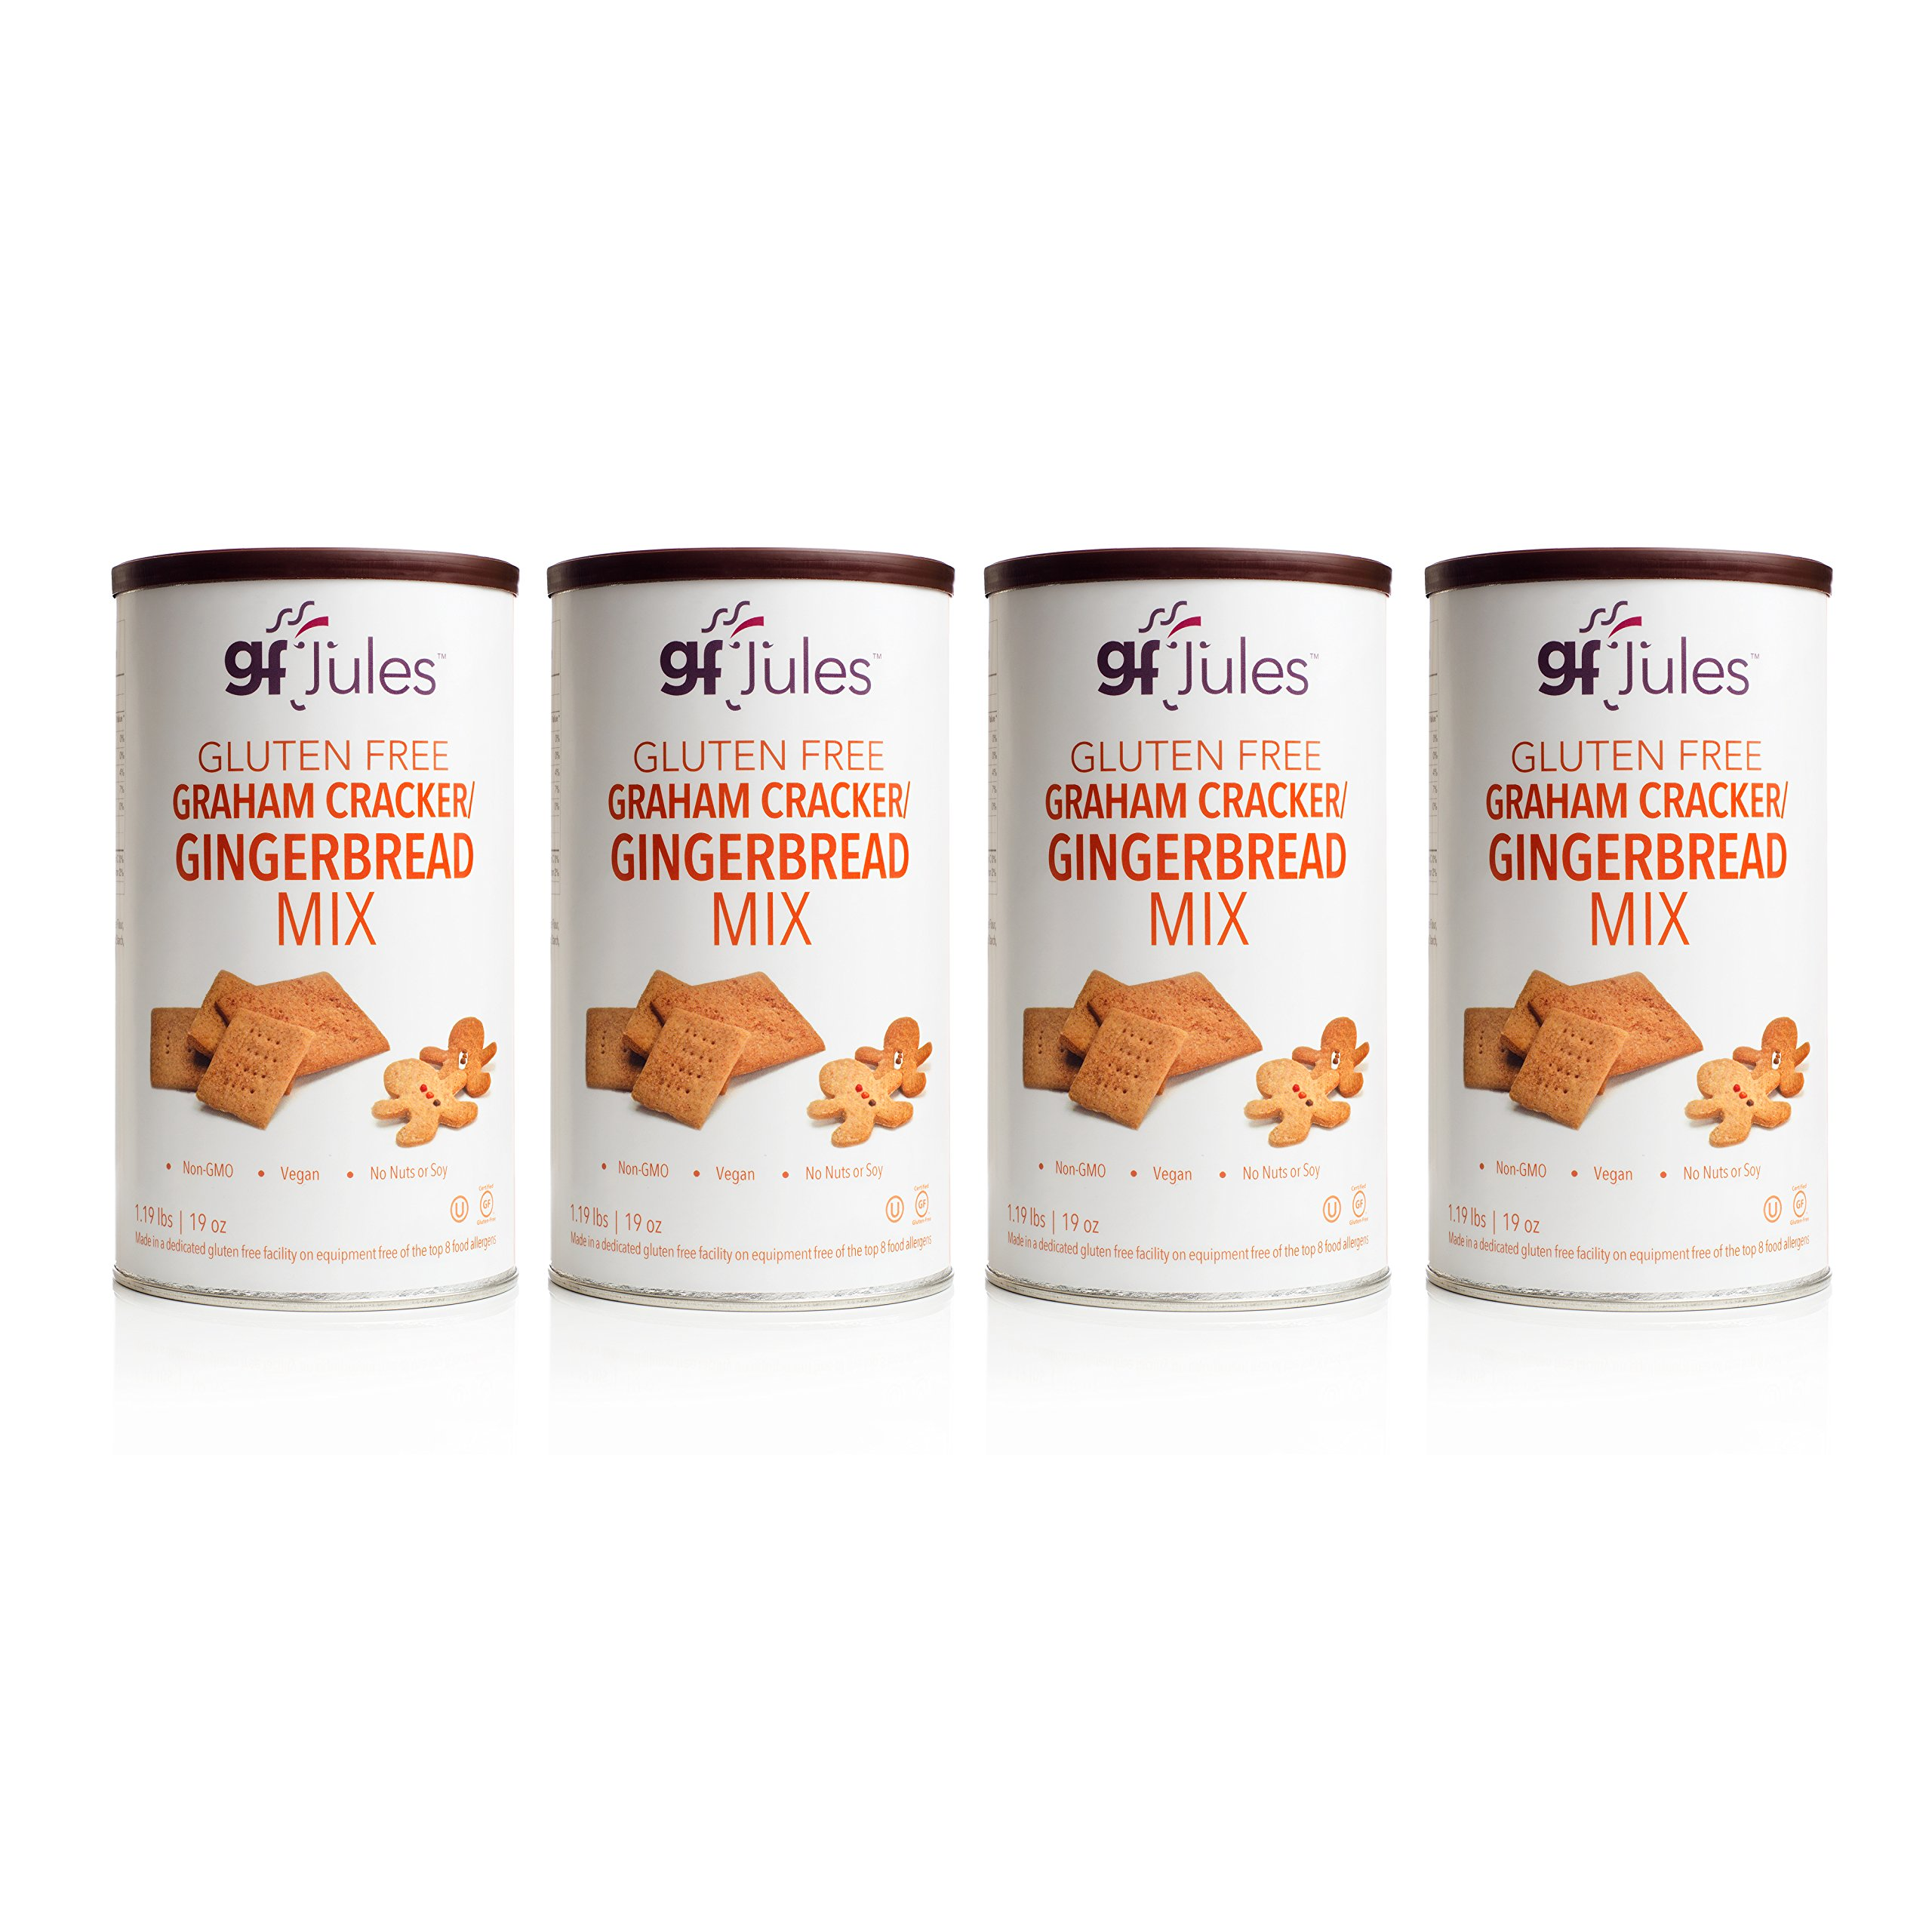 gfJules Gluten Free Graham Cracker - Gingerbread Mix 1.19 lbs, Pack of 4 by gfJules